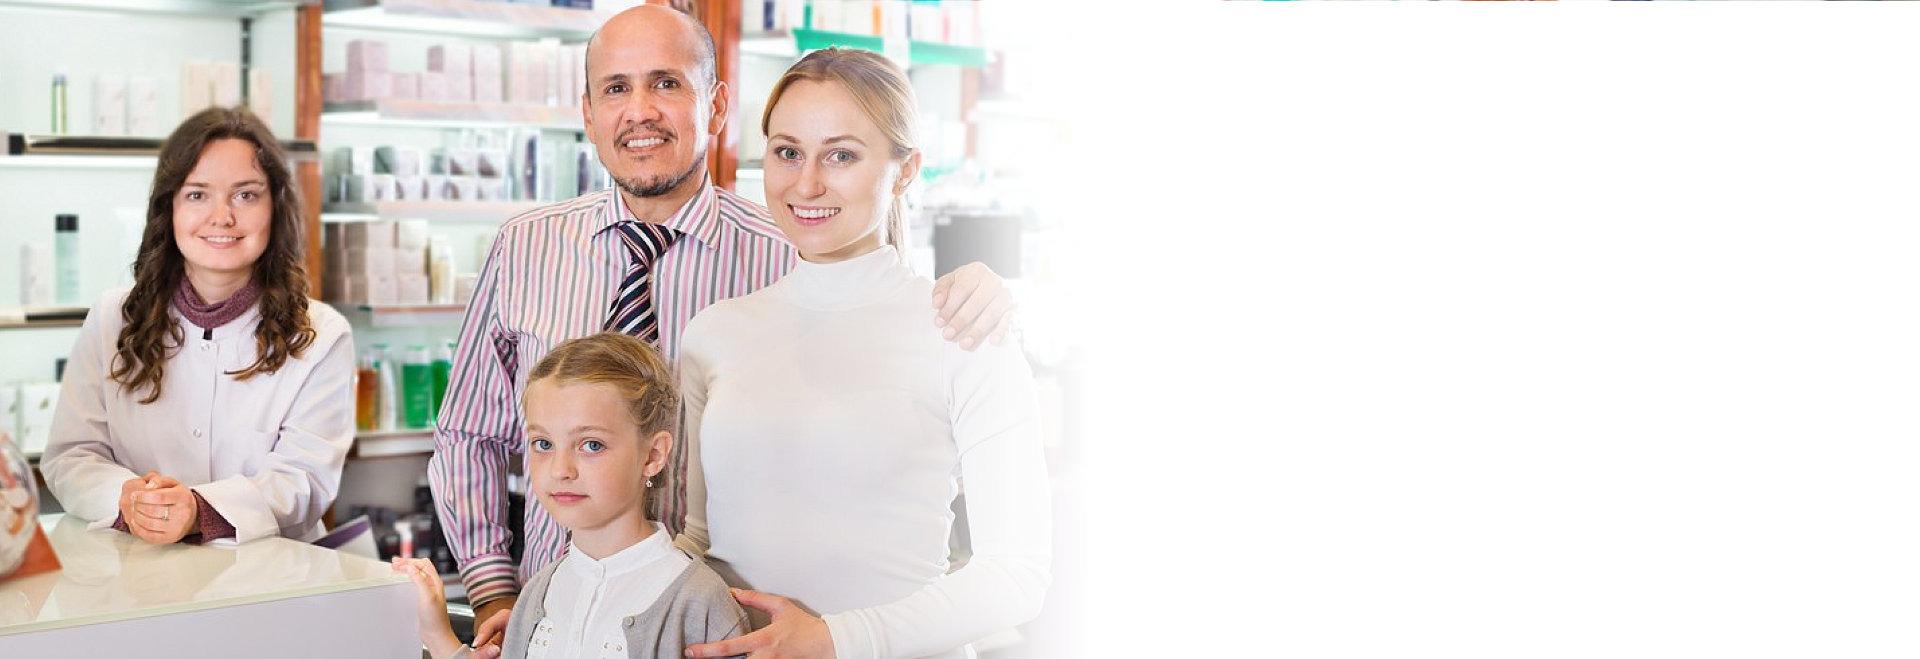 portrait of four people standing in a pharmacy